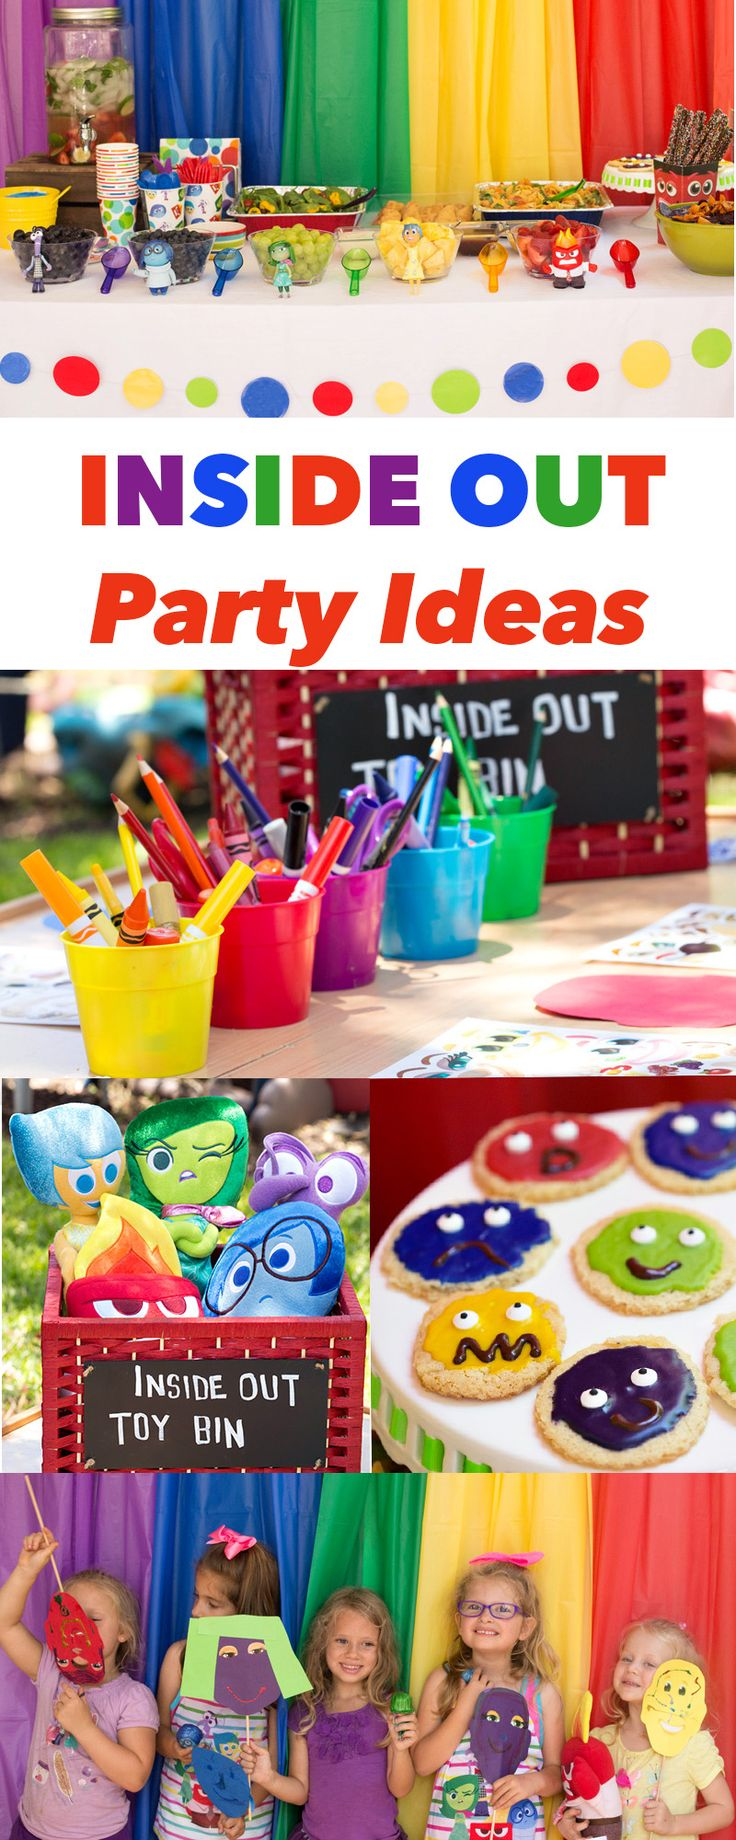 Inside Out Party Ideas---like white table cloth with rainbow background